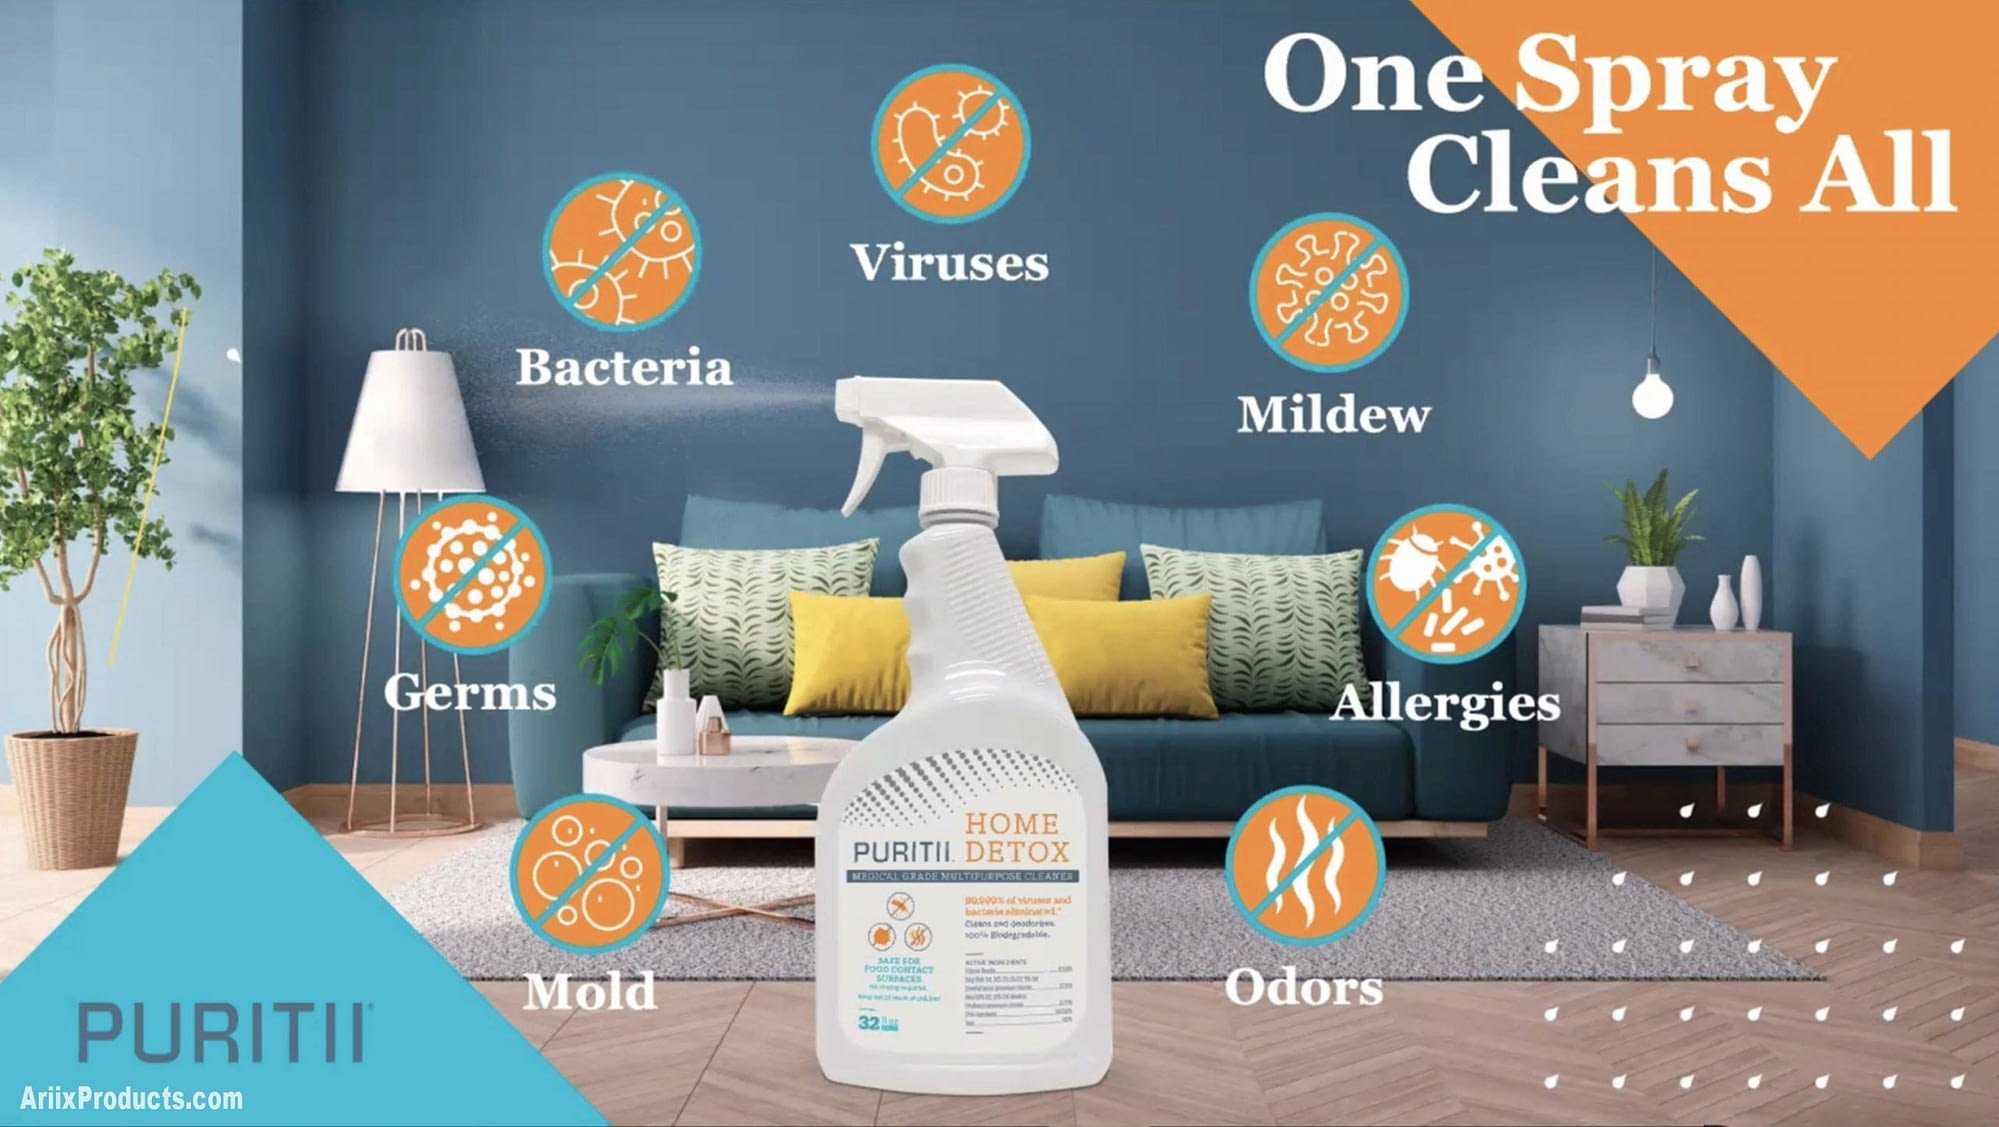 Puritii Home Detox cleaner